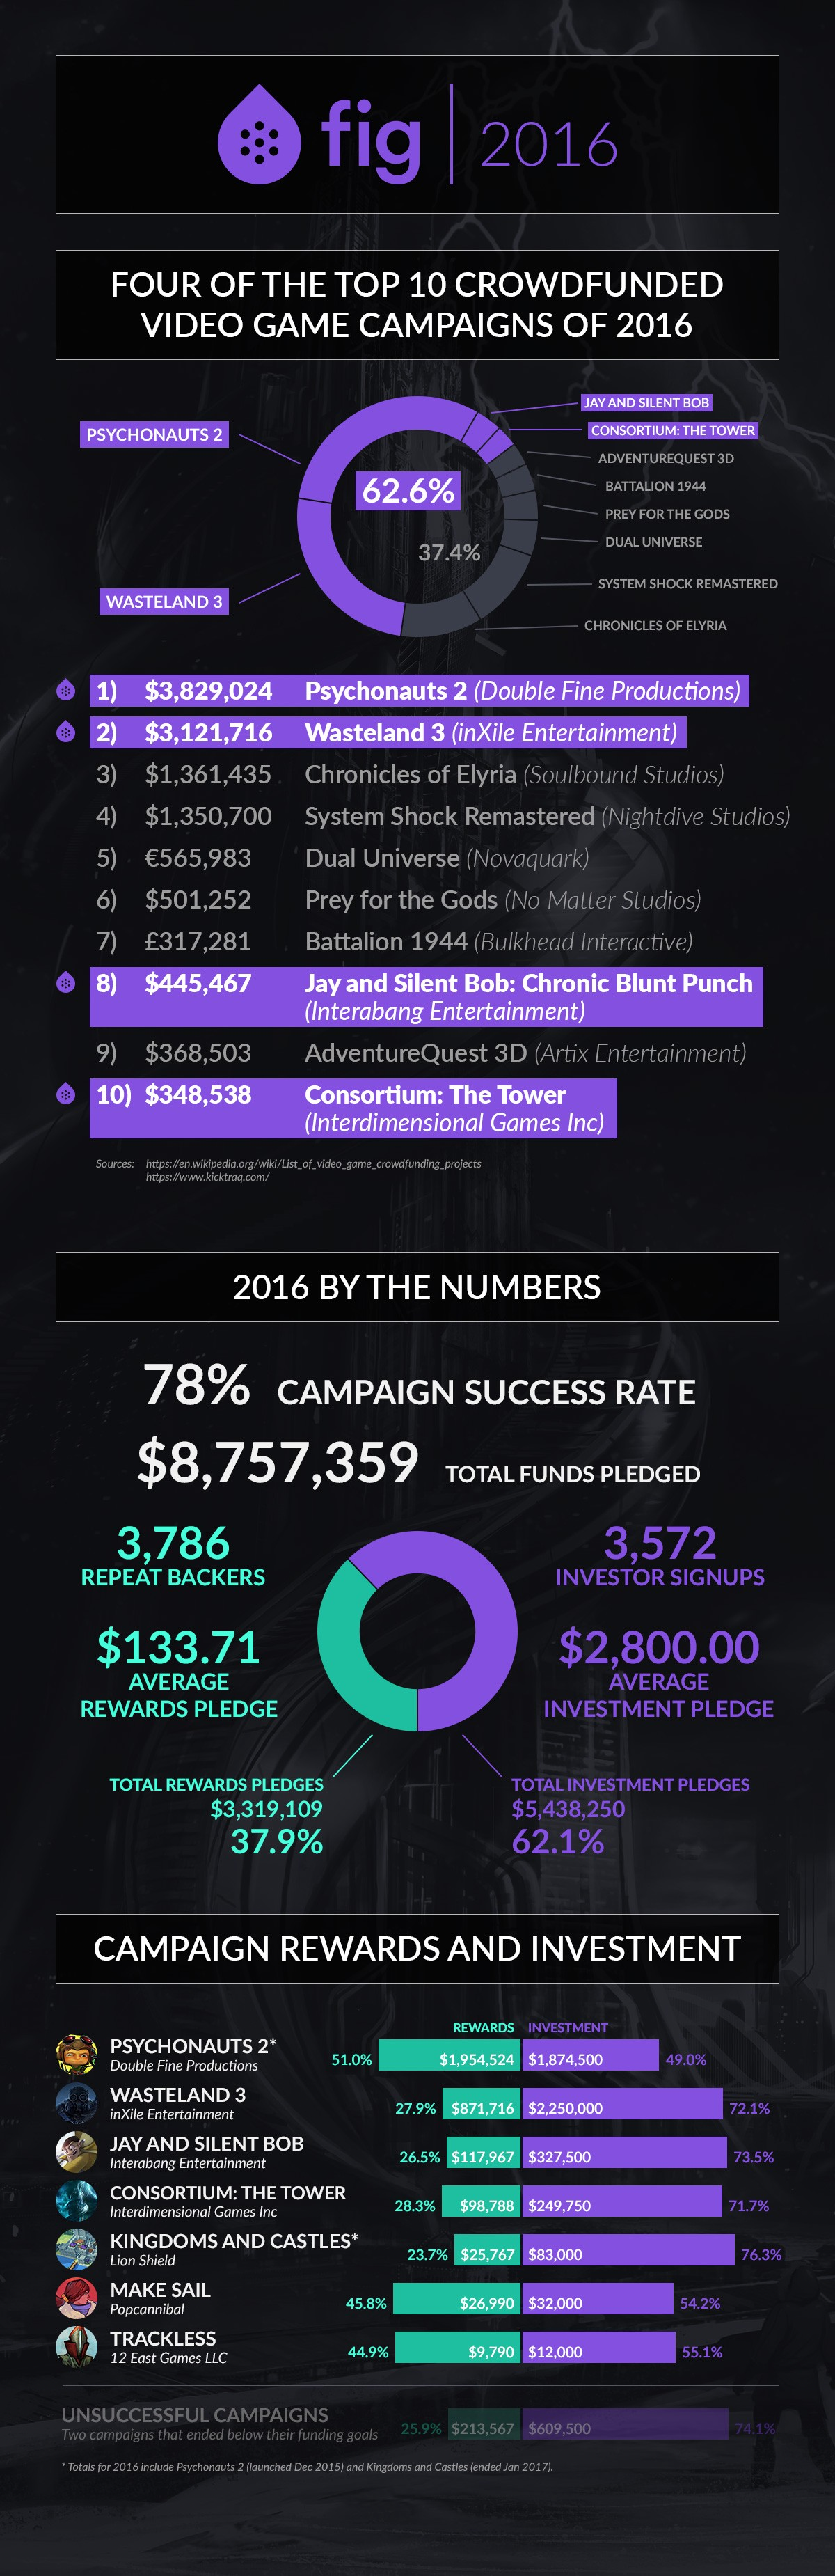 fig_infographic_2016